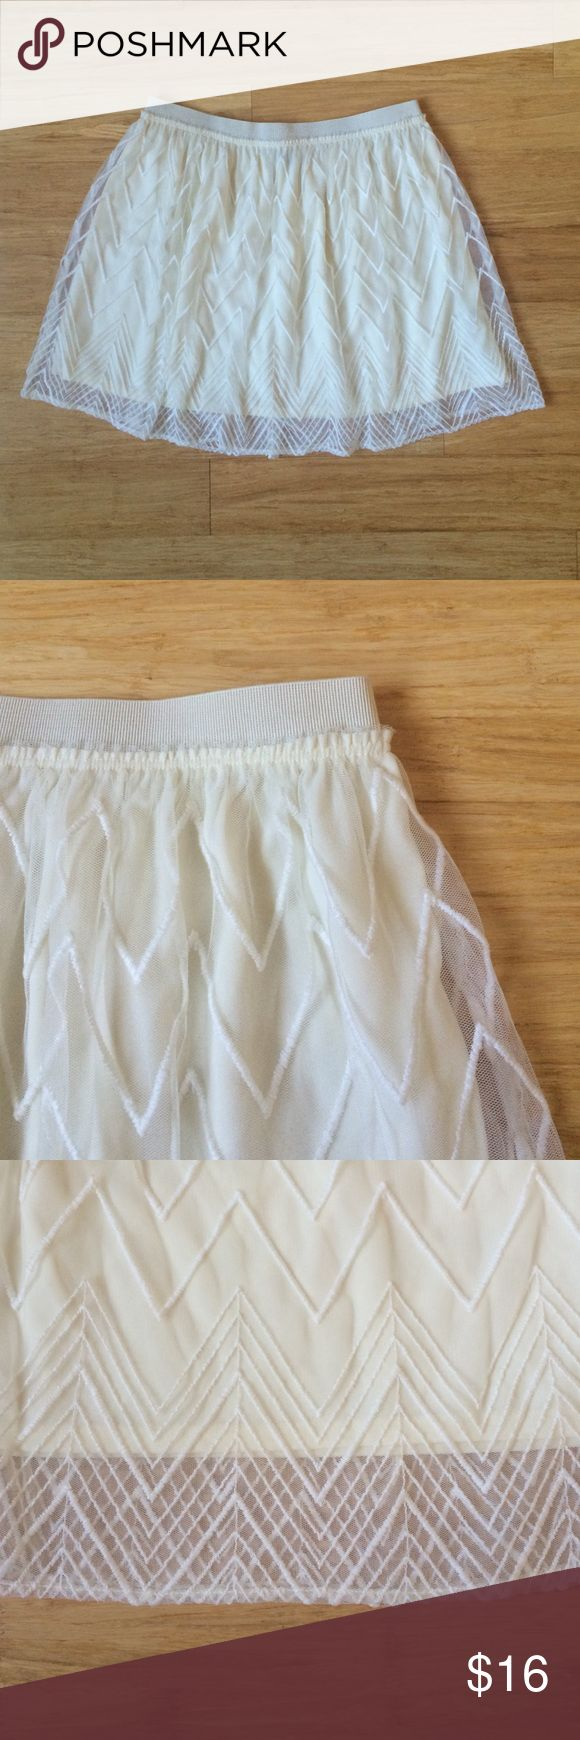 """Chevron Skater Skirt Size Small Gently used skater skirt from American Eagle. Size small. Outer layer is cream, nylon mesh with all-over chevron embroidery. Lining is cream, polyester knit. Elastic waistband, pull-on style (about 29""""). No rips or stains. Worn two times at most! American Eagle Outfitters Skirts Circle & Skater"""